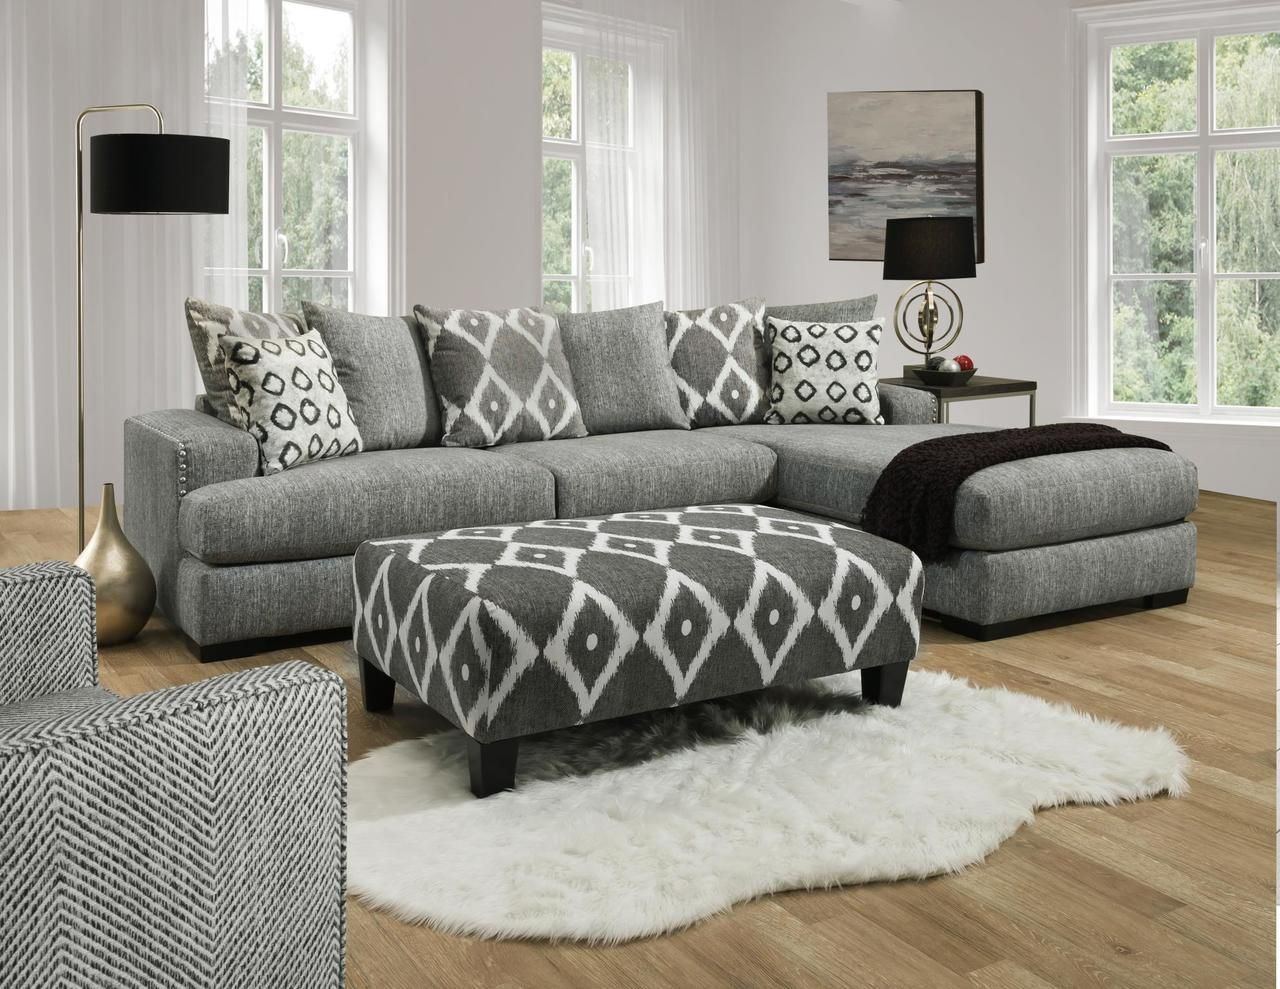 Cool Albany 883 Stonewash Sectional With Chaise Savvy Discount Ibusinesslaw Wood Chair Design Ideas Ibusinesslaworg